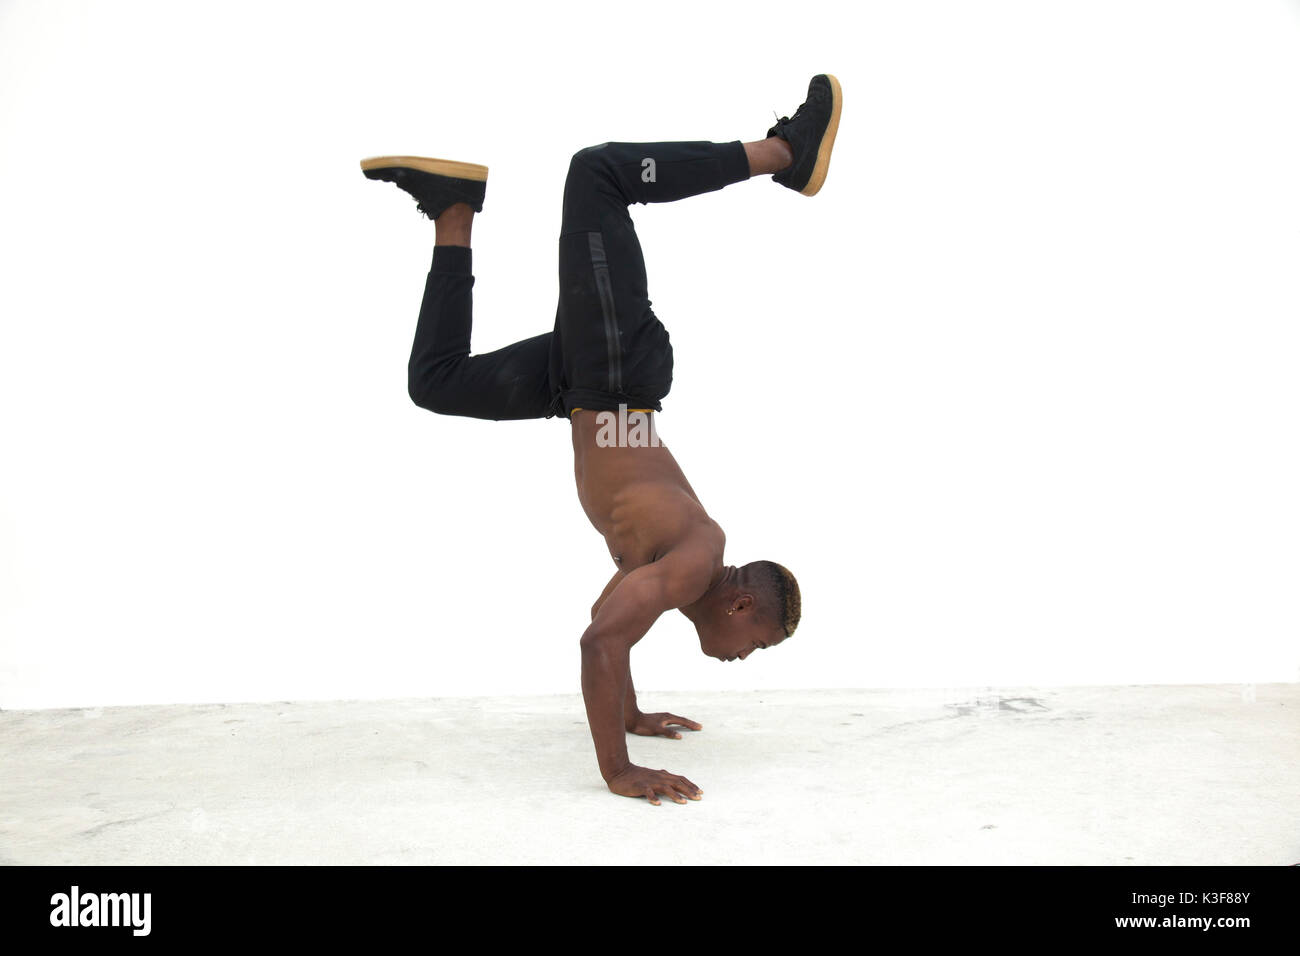 Young Adult Man Doing Handstand during Street Dance - Stock Image